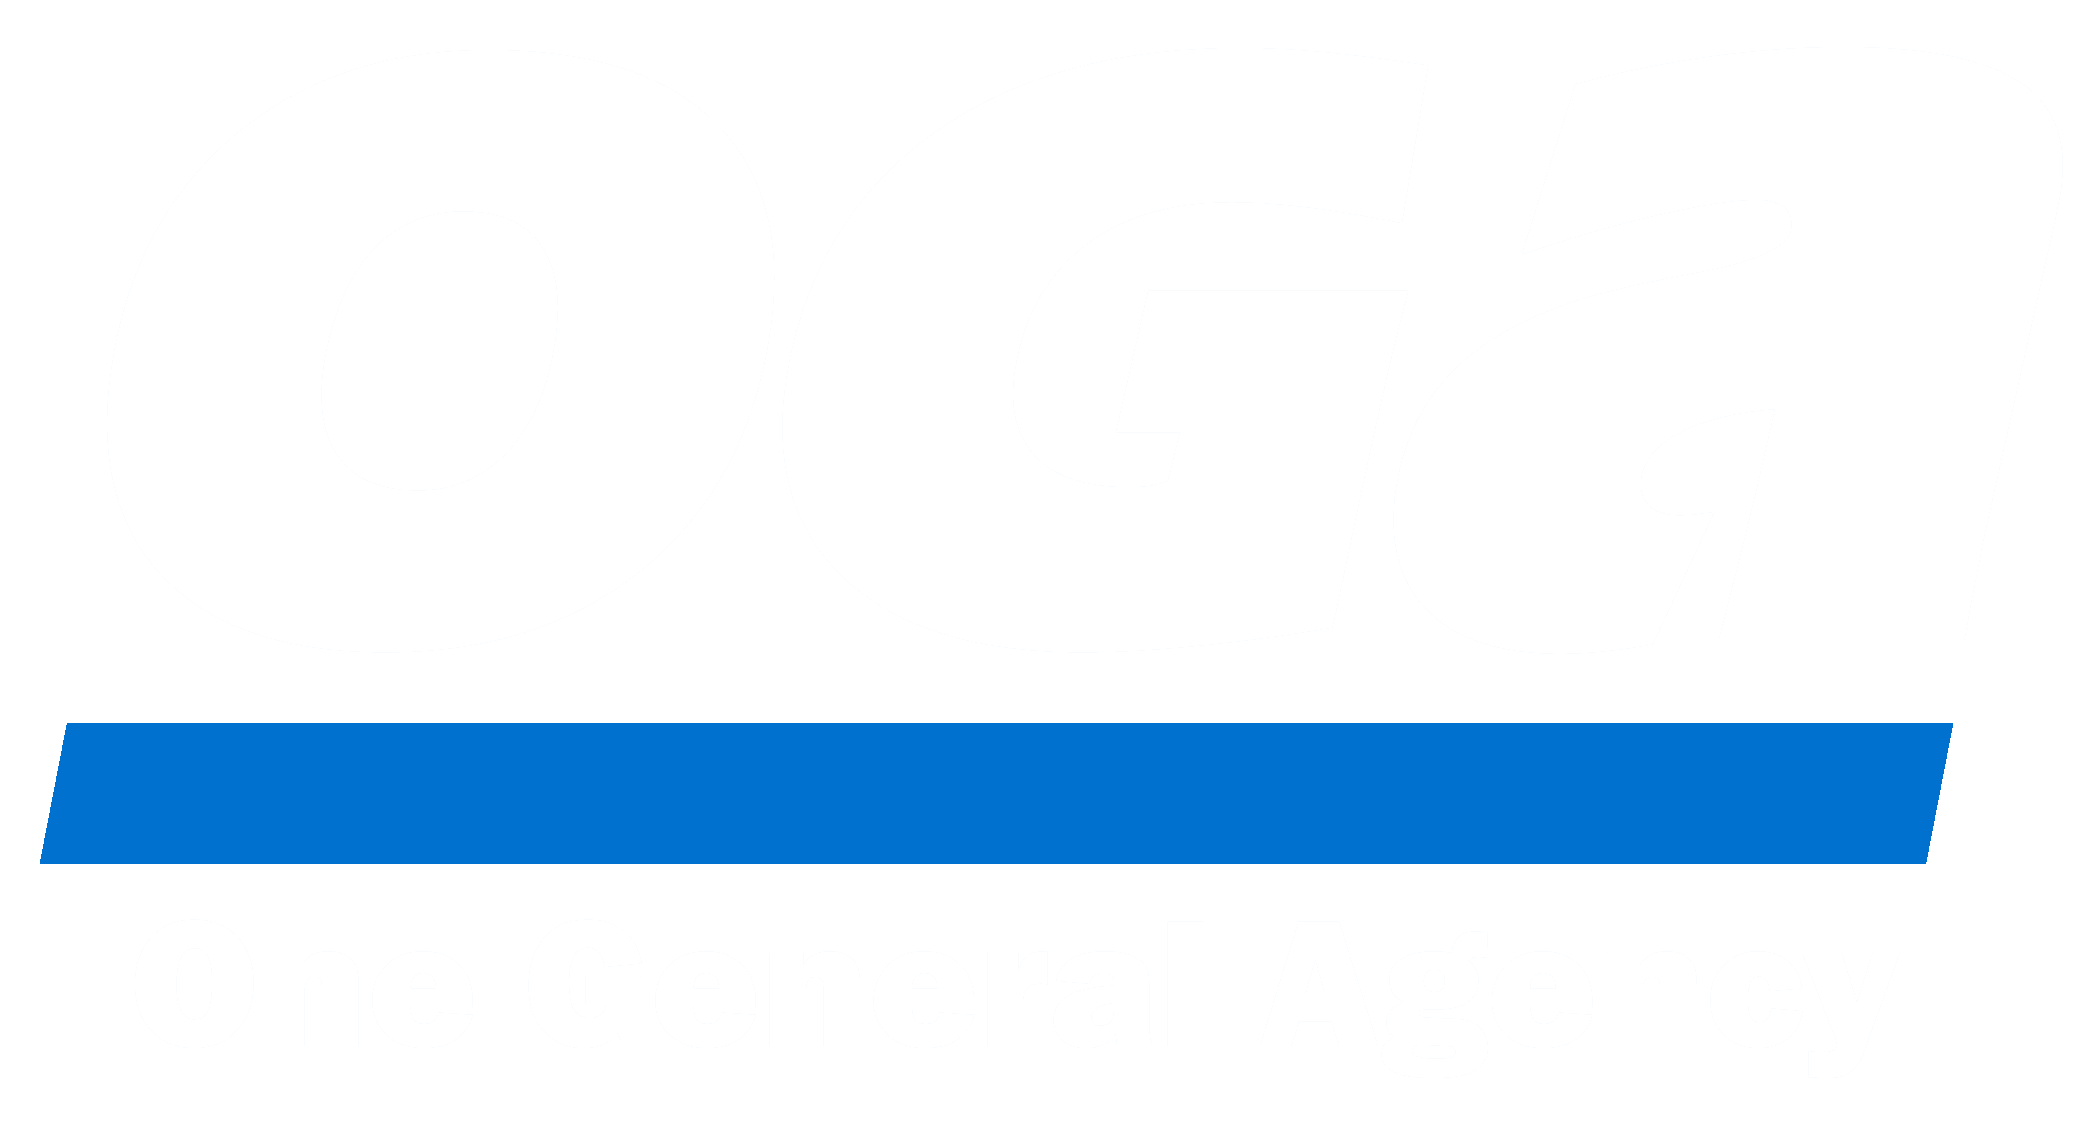 Partner with One General Agency